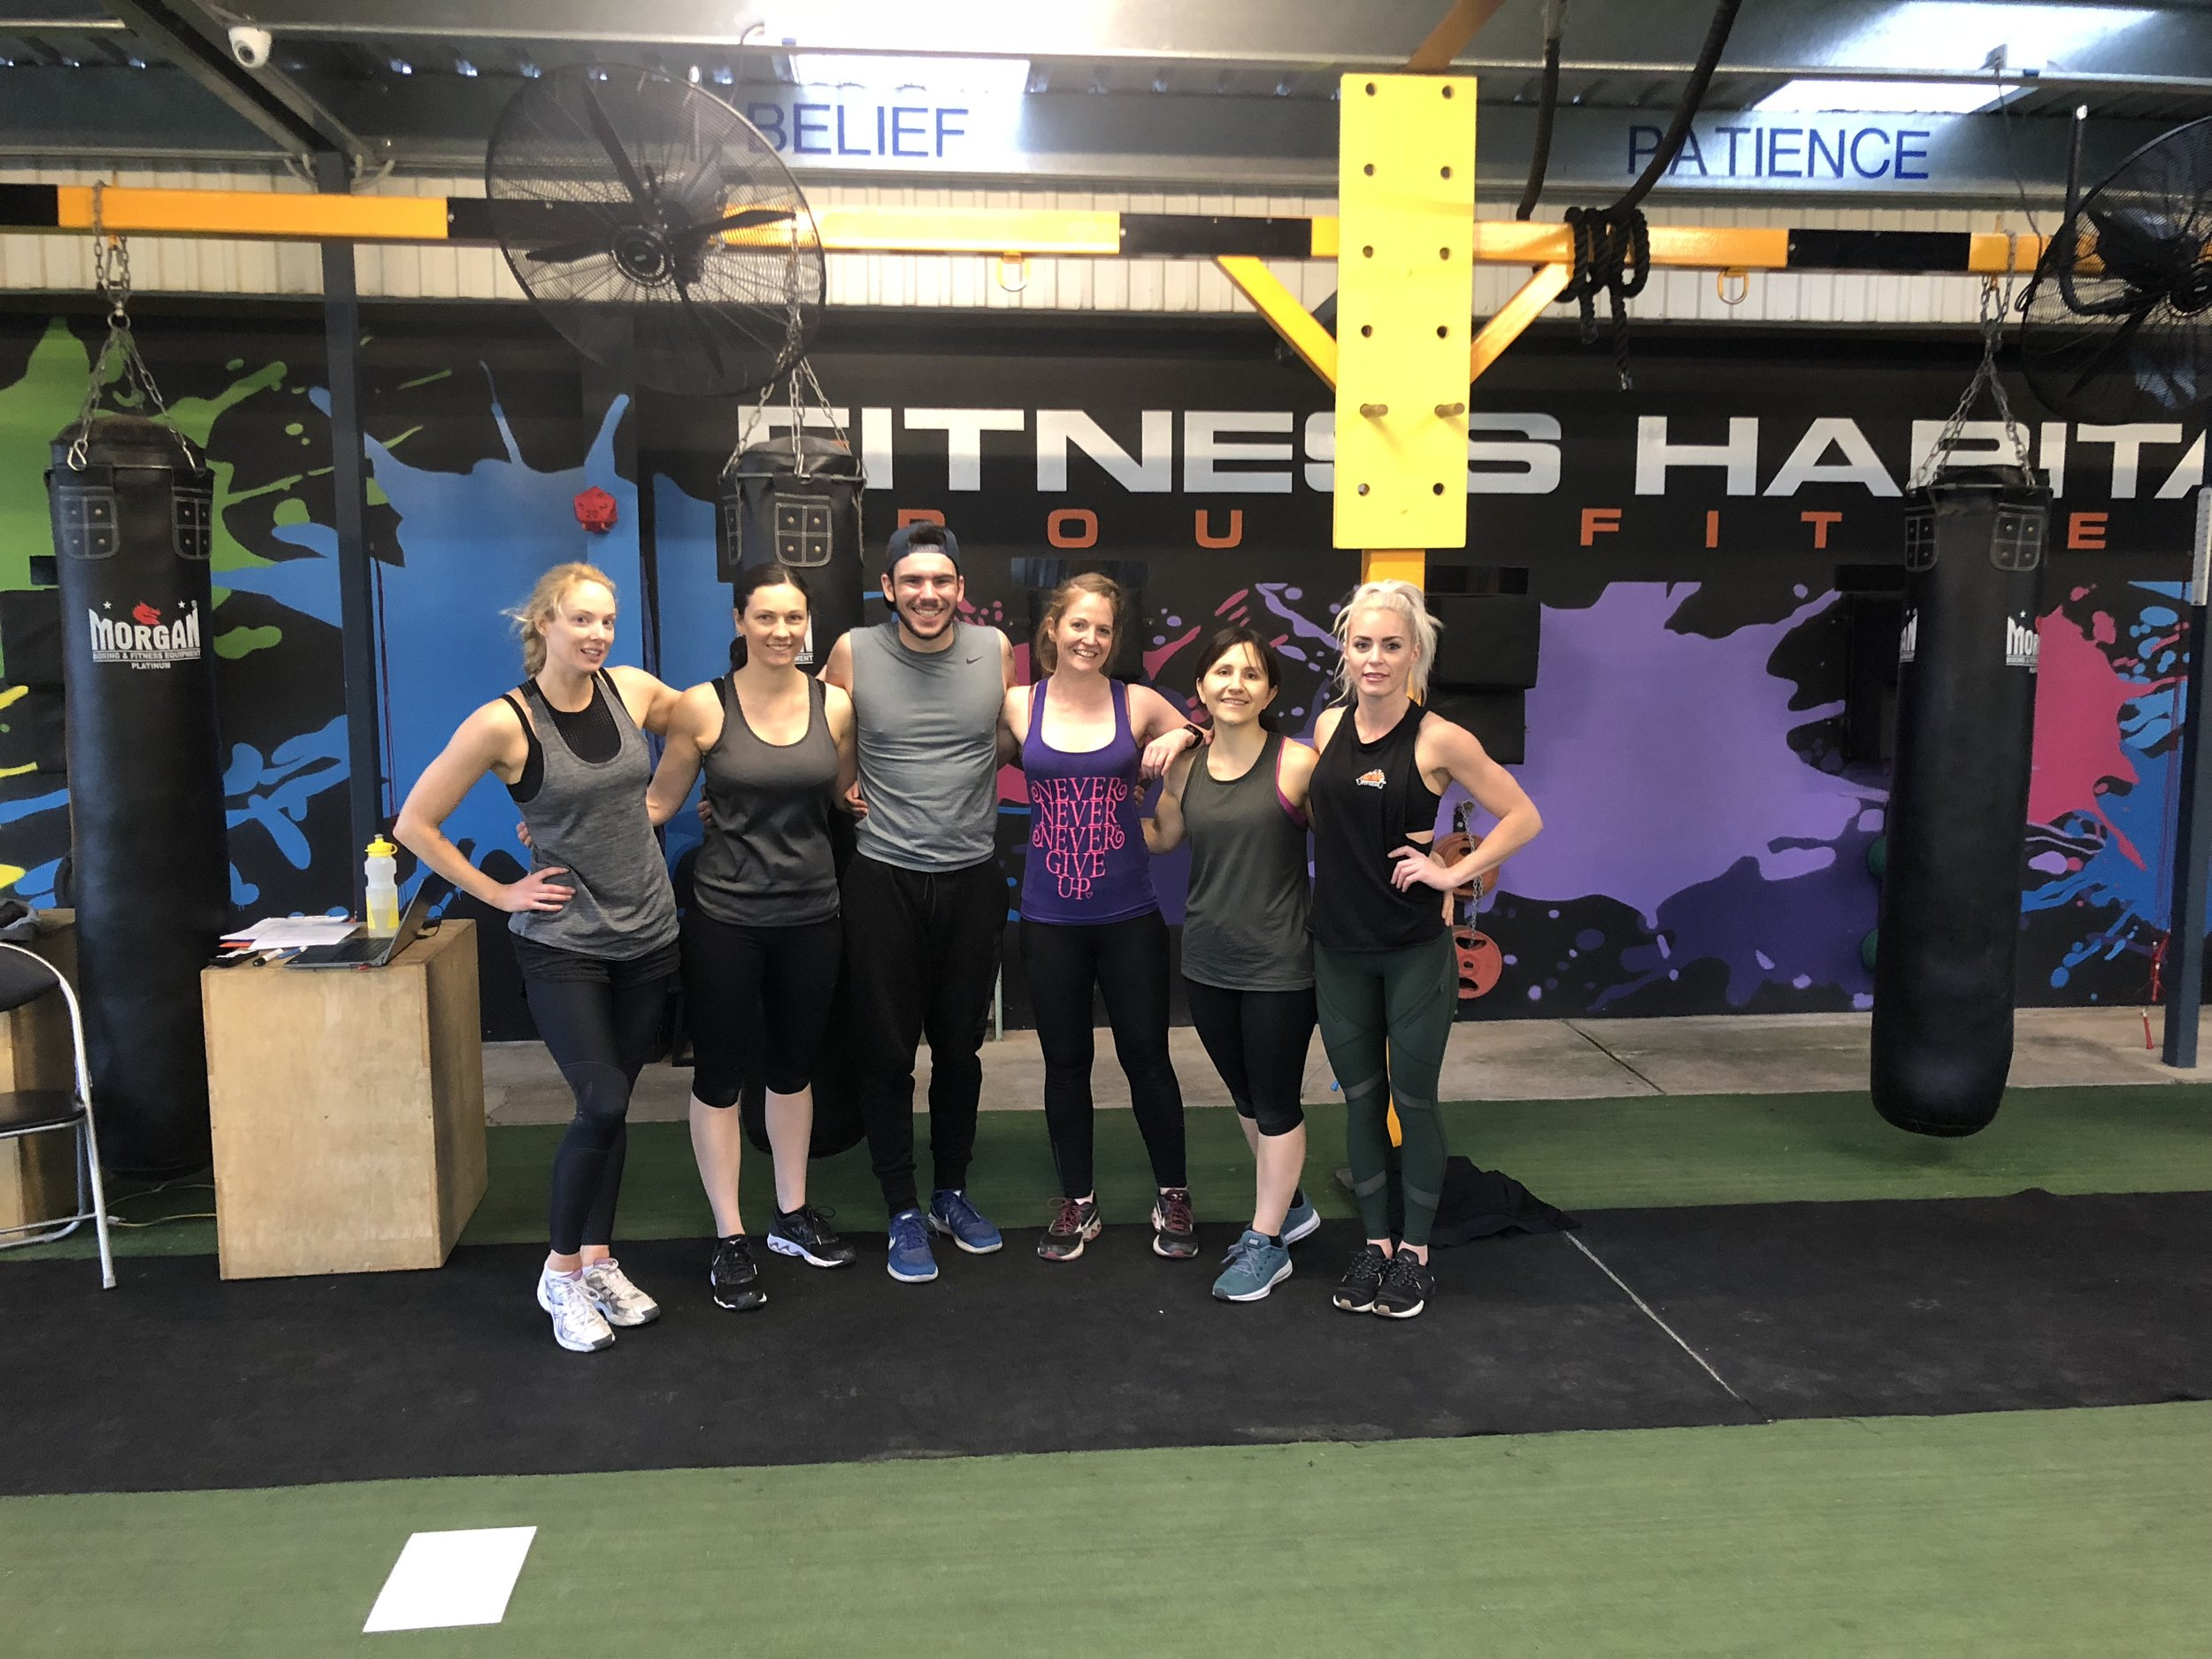 Fitness Habitat is where Trainers come to get certified as Metafit Instructors, so you can rest assured - If we are certifying coaches, you are going to get the best HIIT workouts with us.